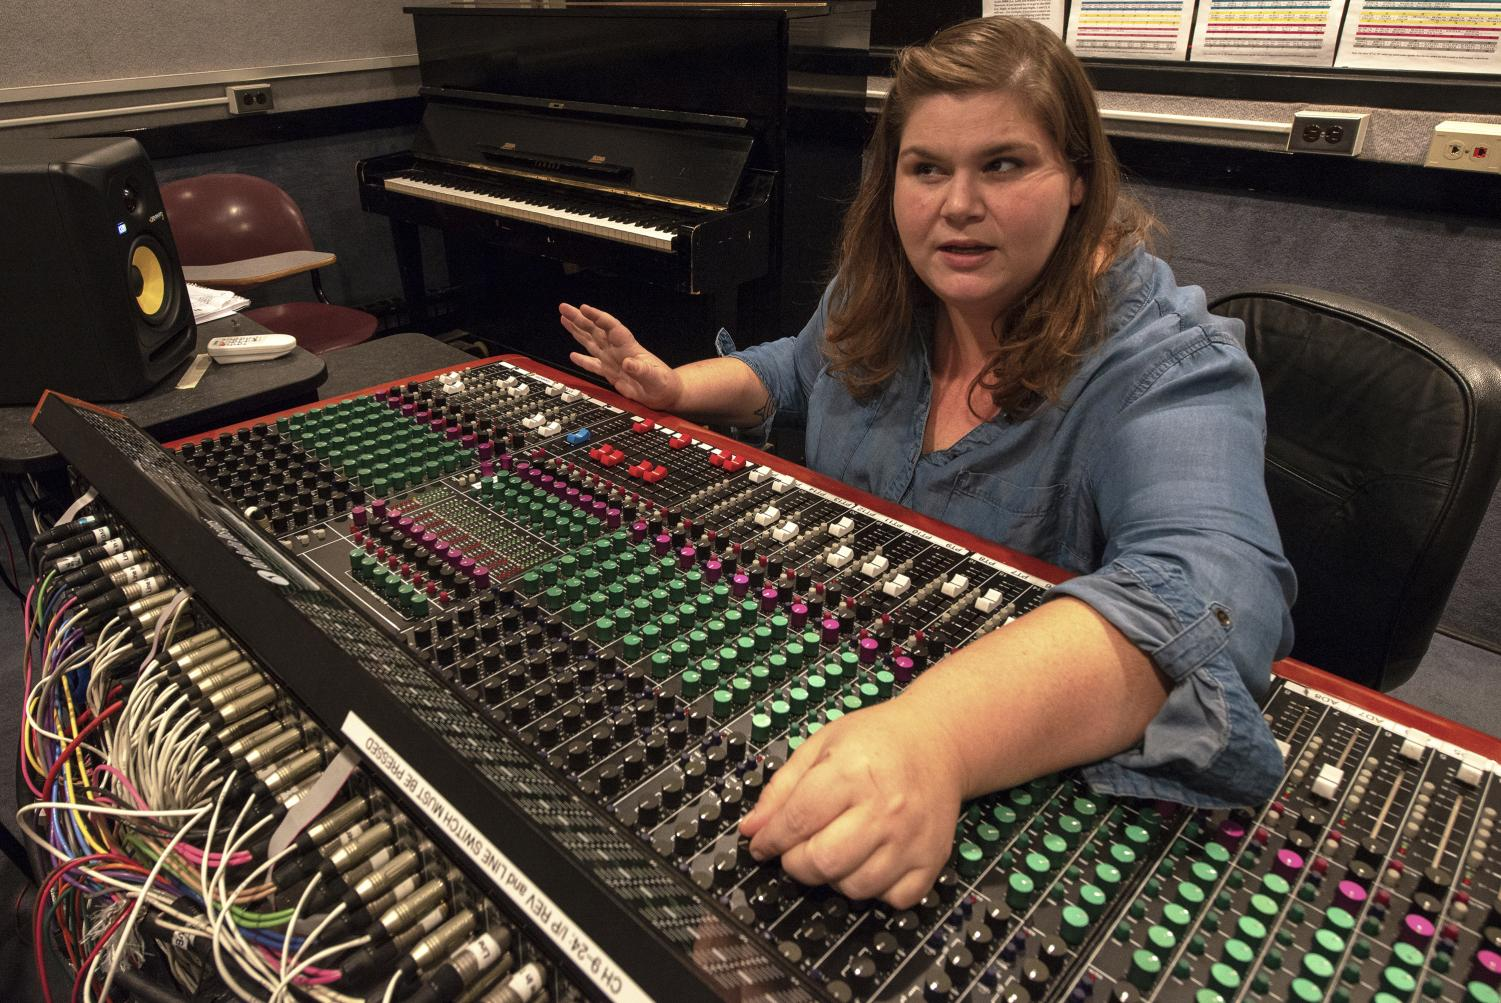 Jenny Johnson, a lecturer in the Radio, Television, and Digital Media department of SIU operates a soundboard. Oct. 17, 2018. (Chase Jordan | @chasejordande)